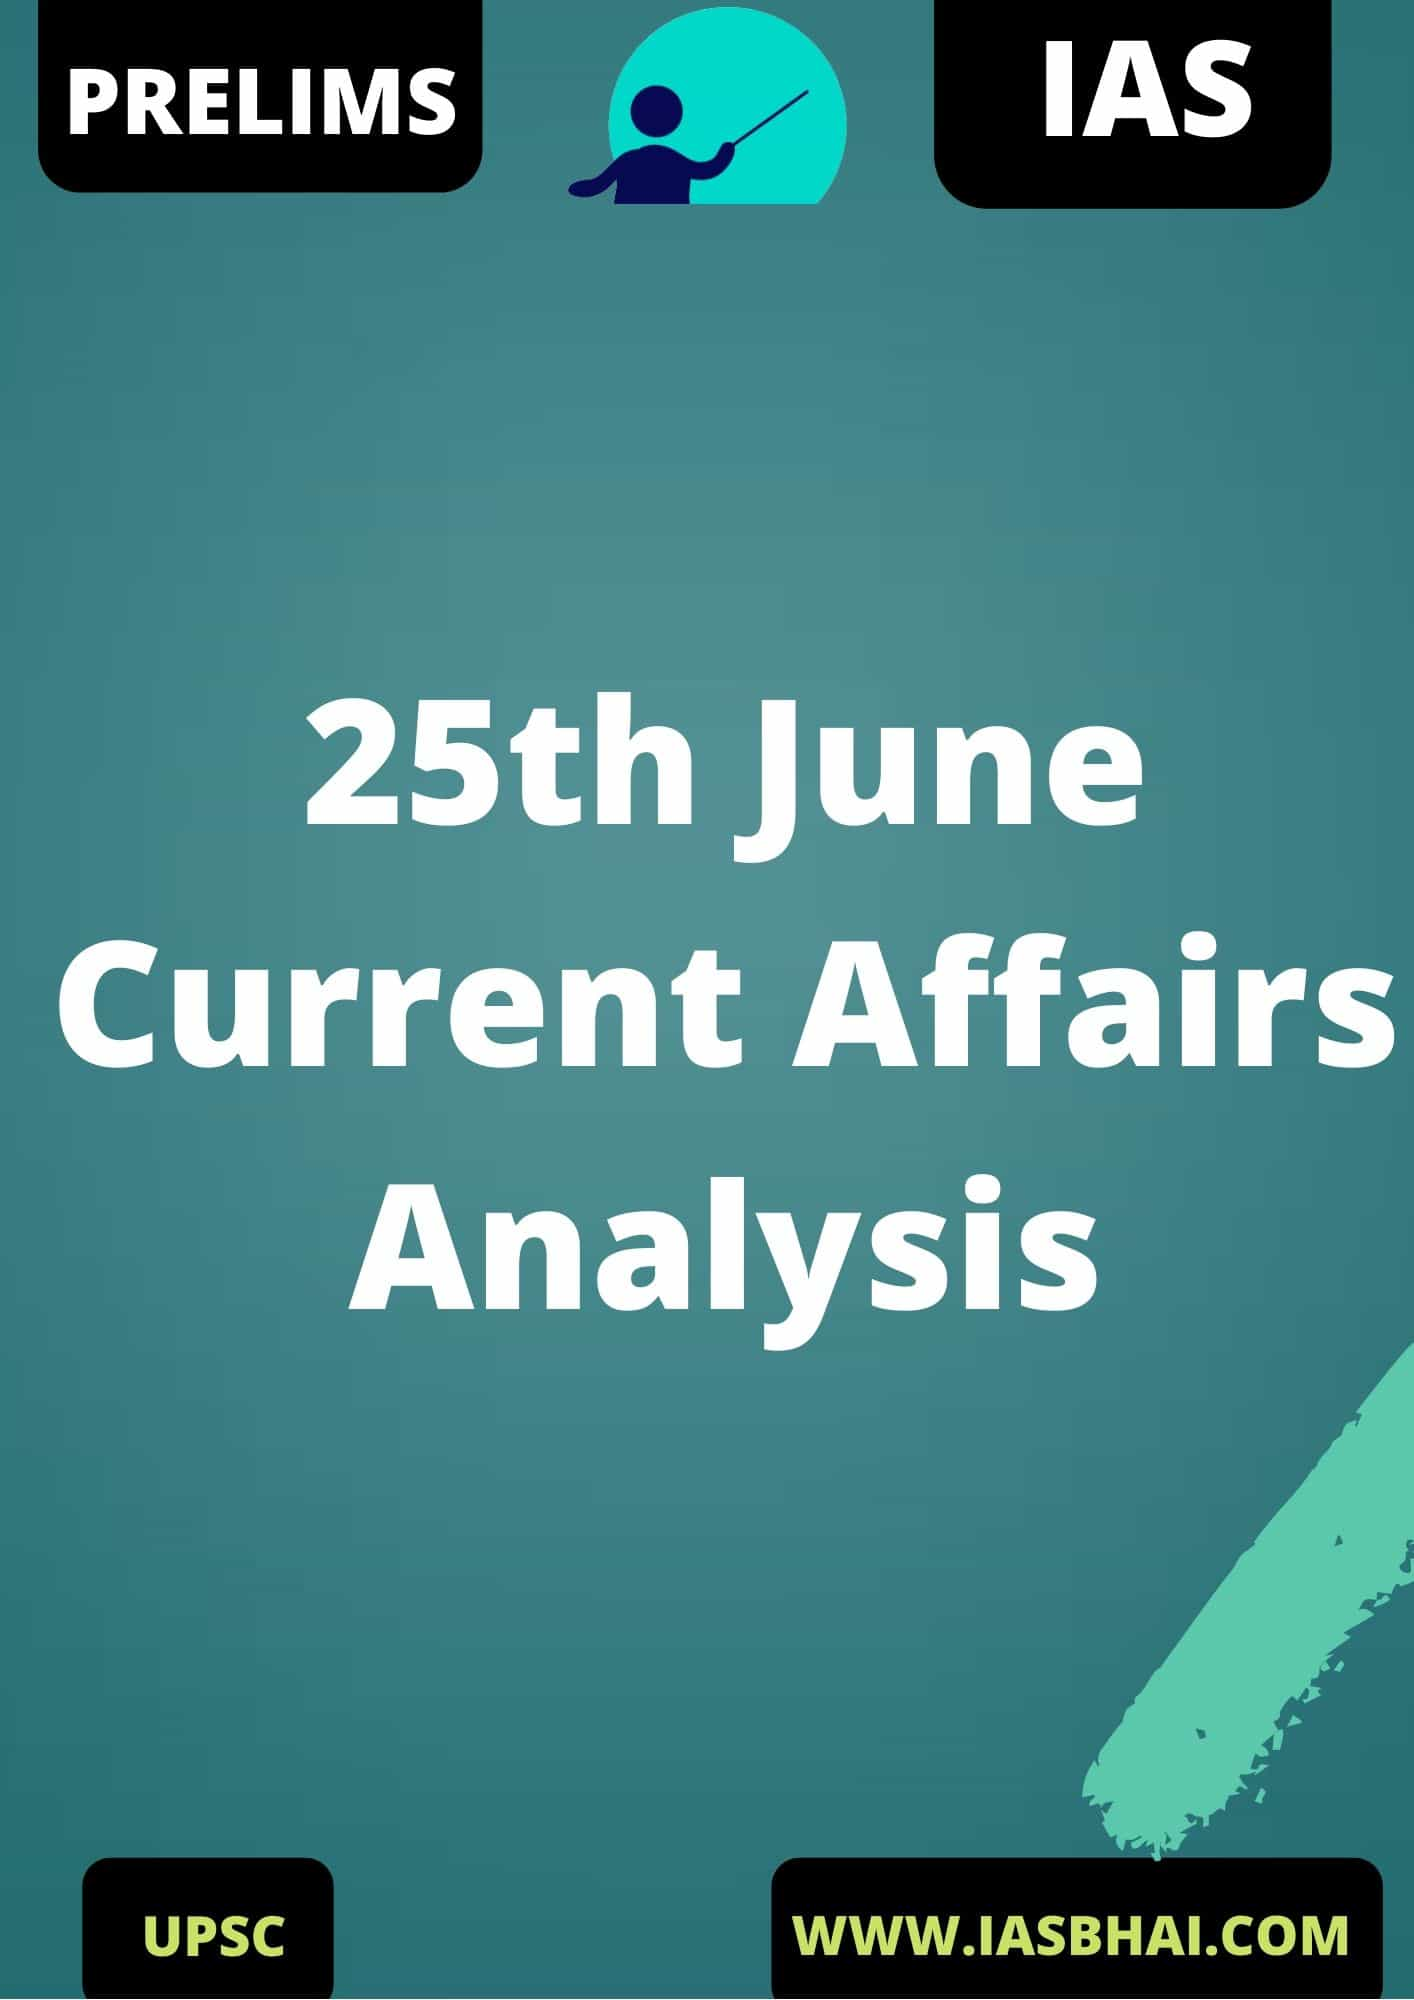 25th June Current Affairs News Analysis Prelims & Mains 2020